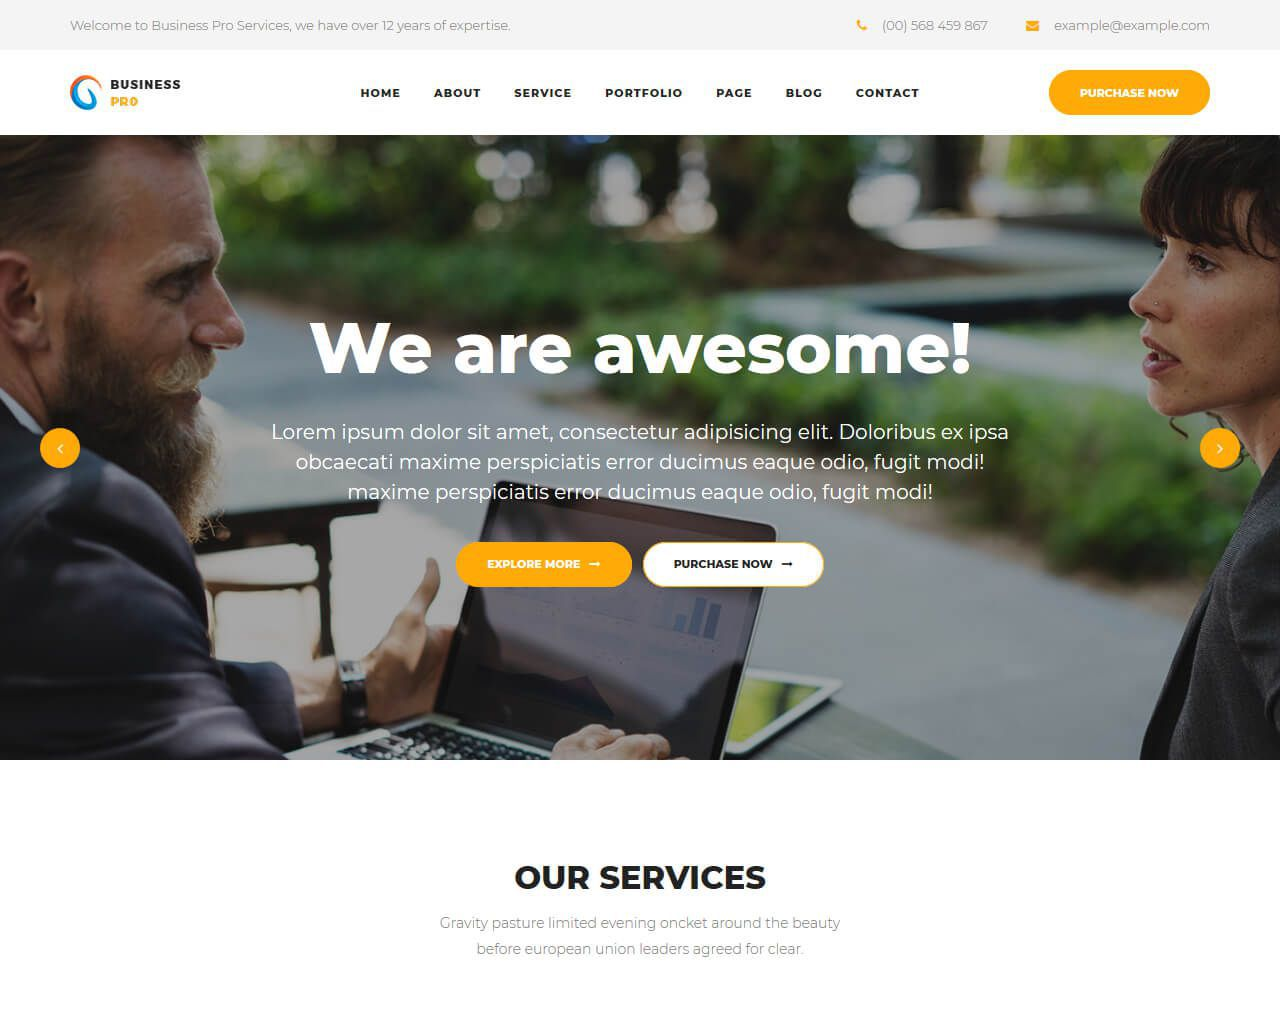 006 Unique Free Busines Website Template Download Html And Cs Image  CssFull